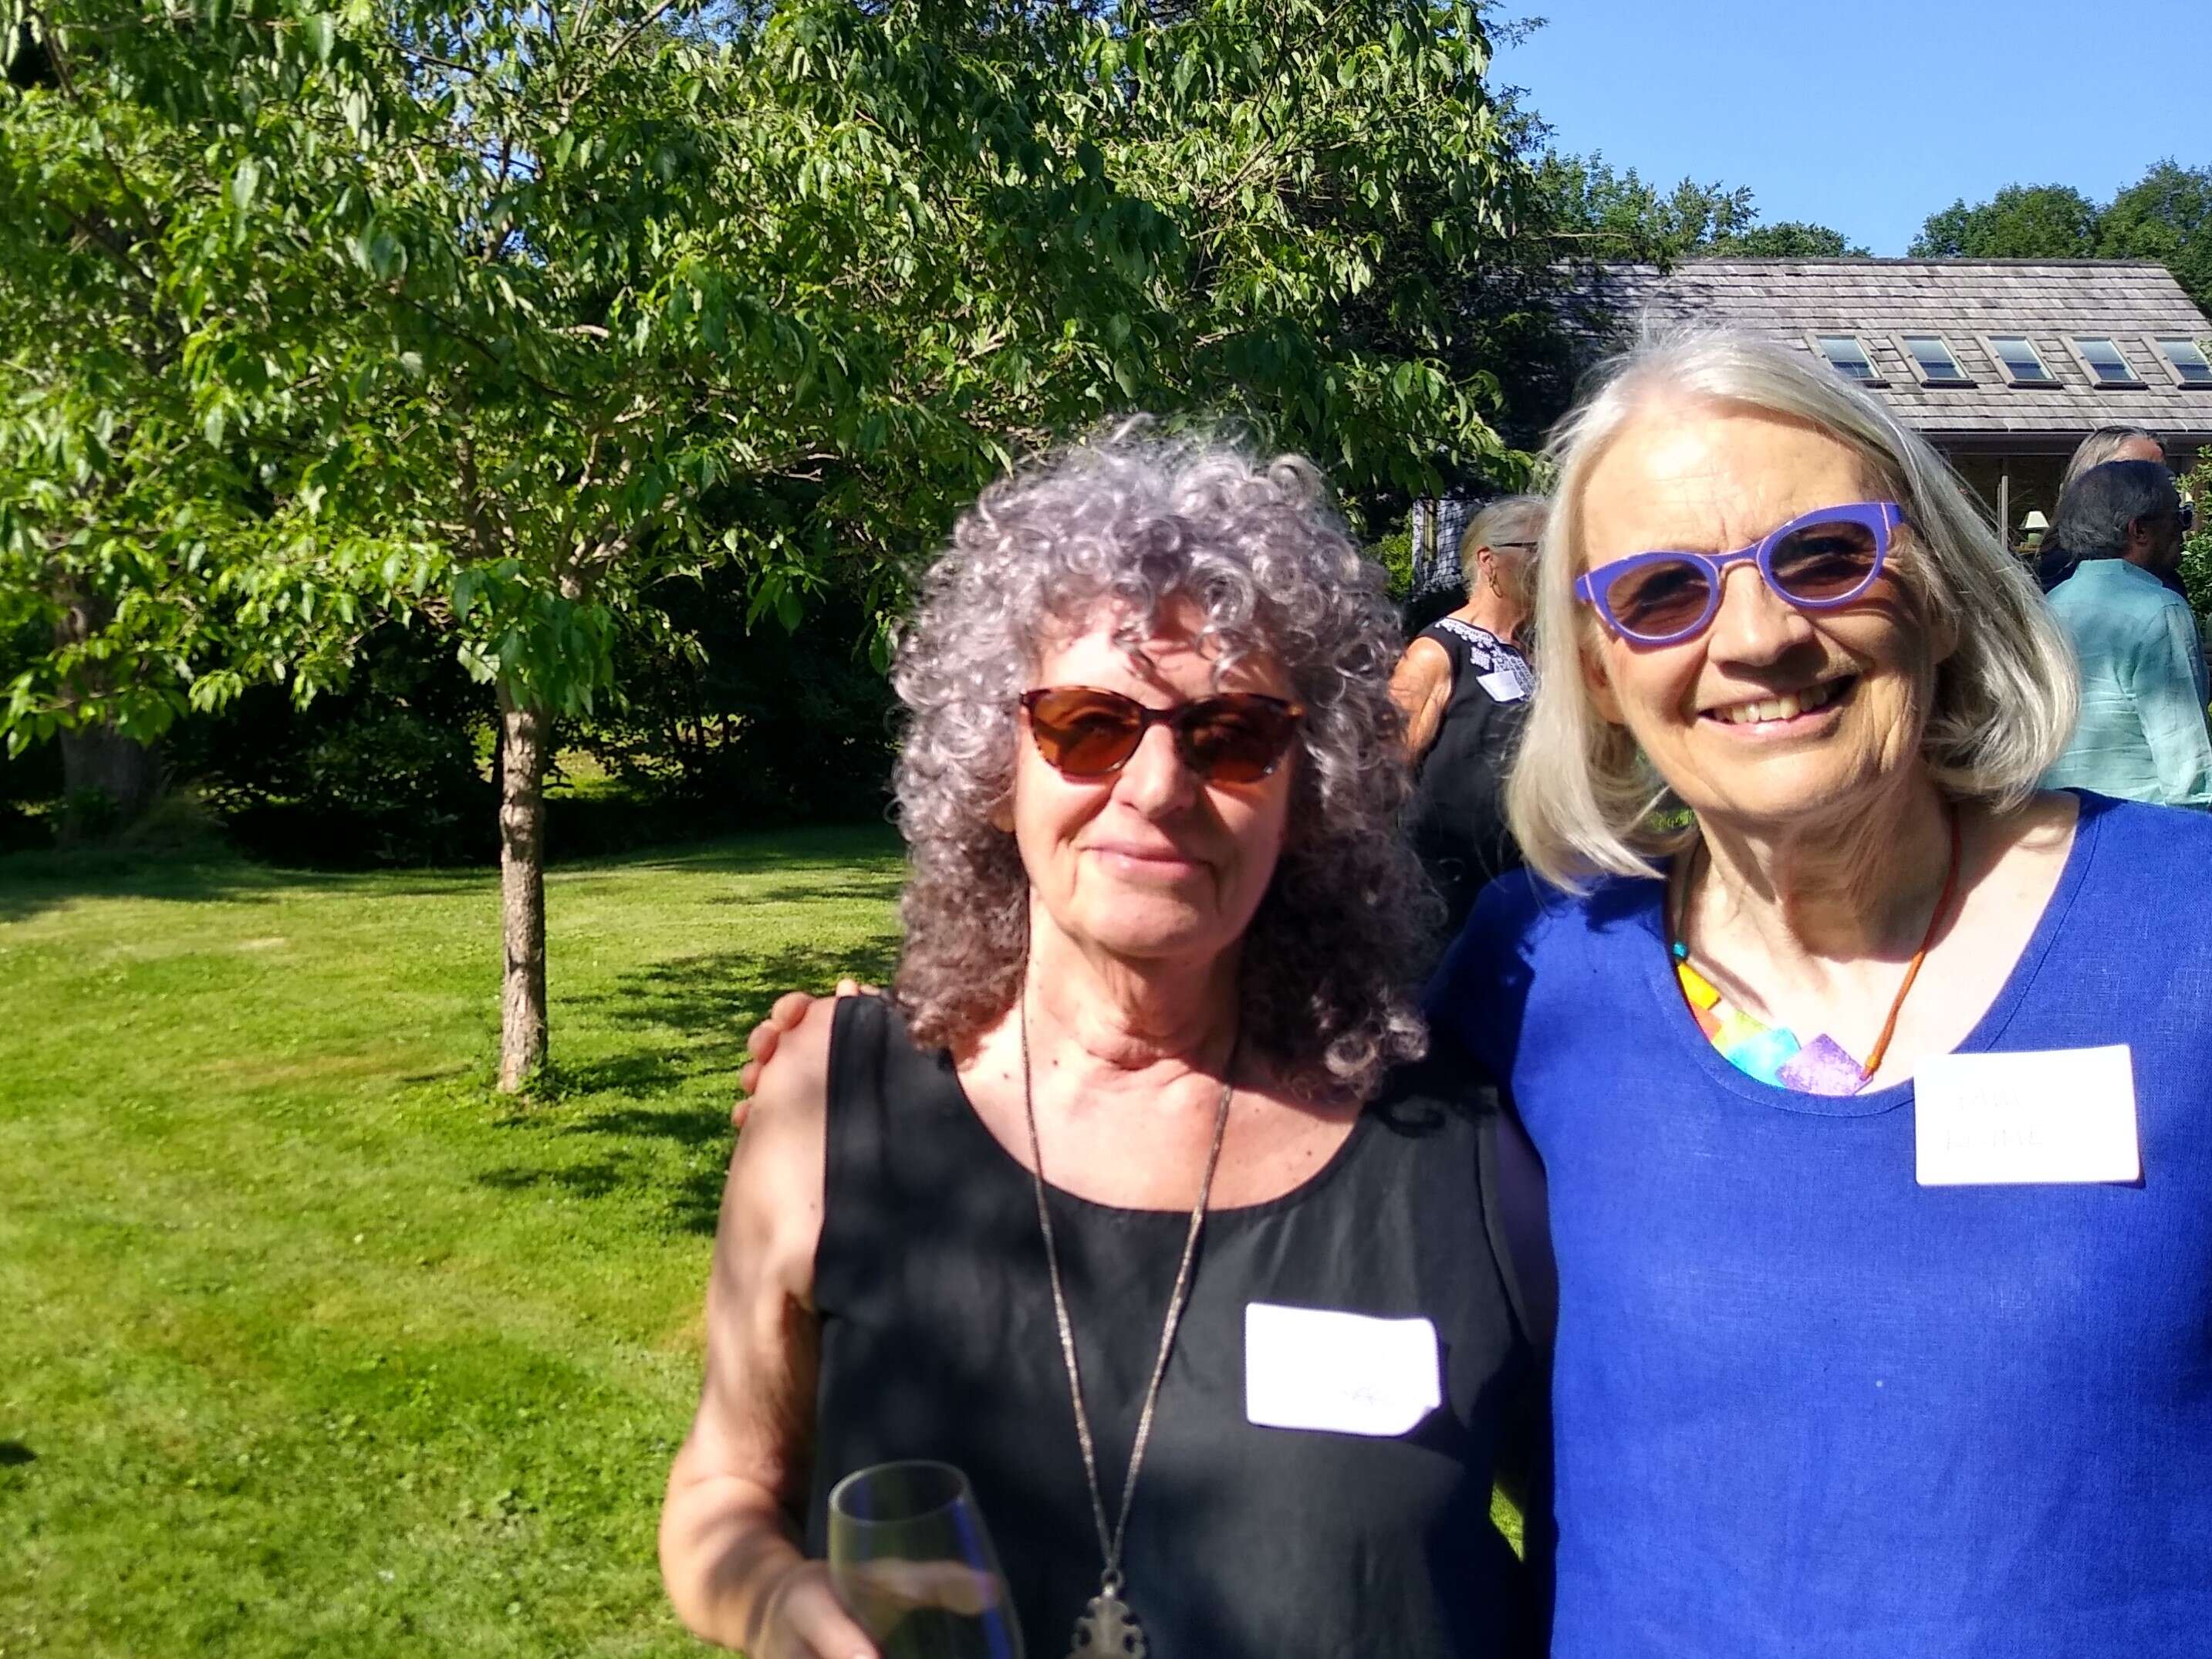 Carole Clark, founder, and Pam Kline, Co-Director, at the Recovery Kitchen garden party